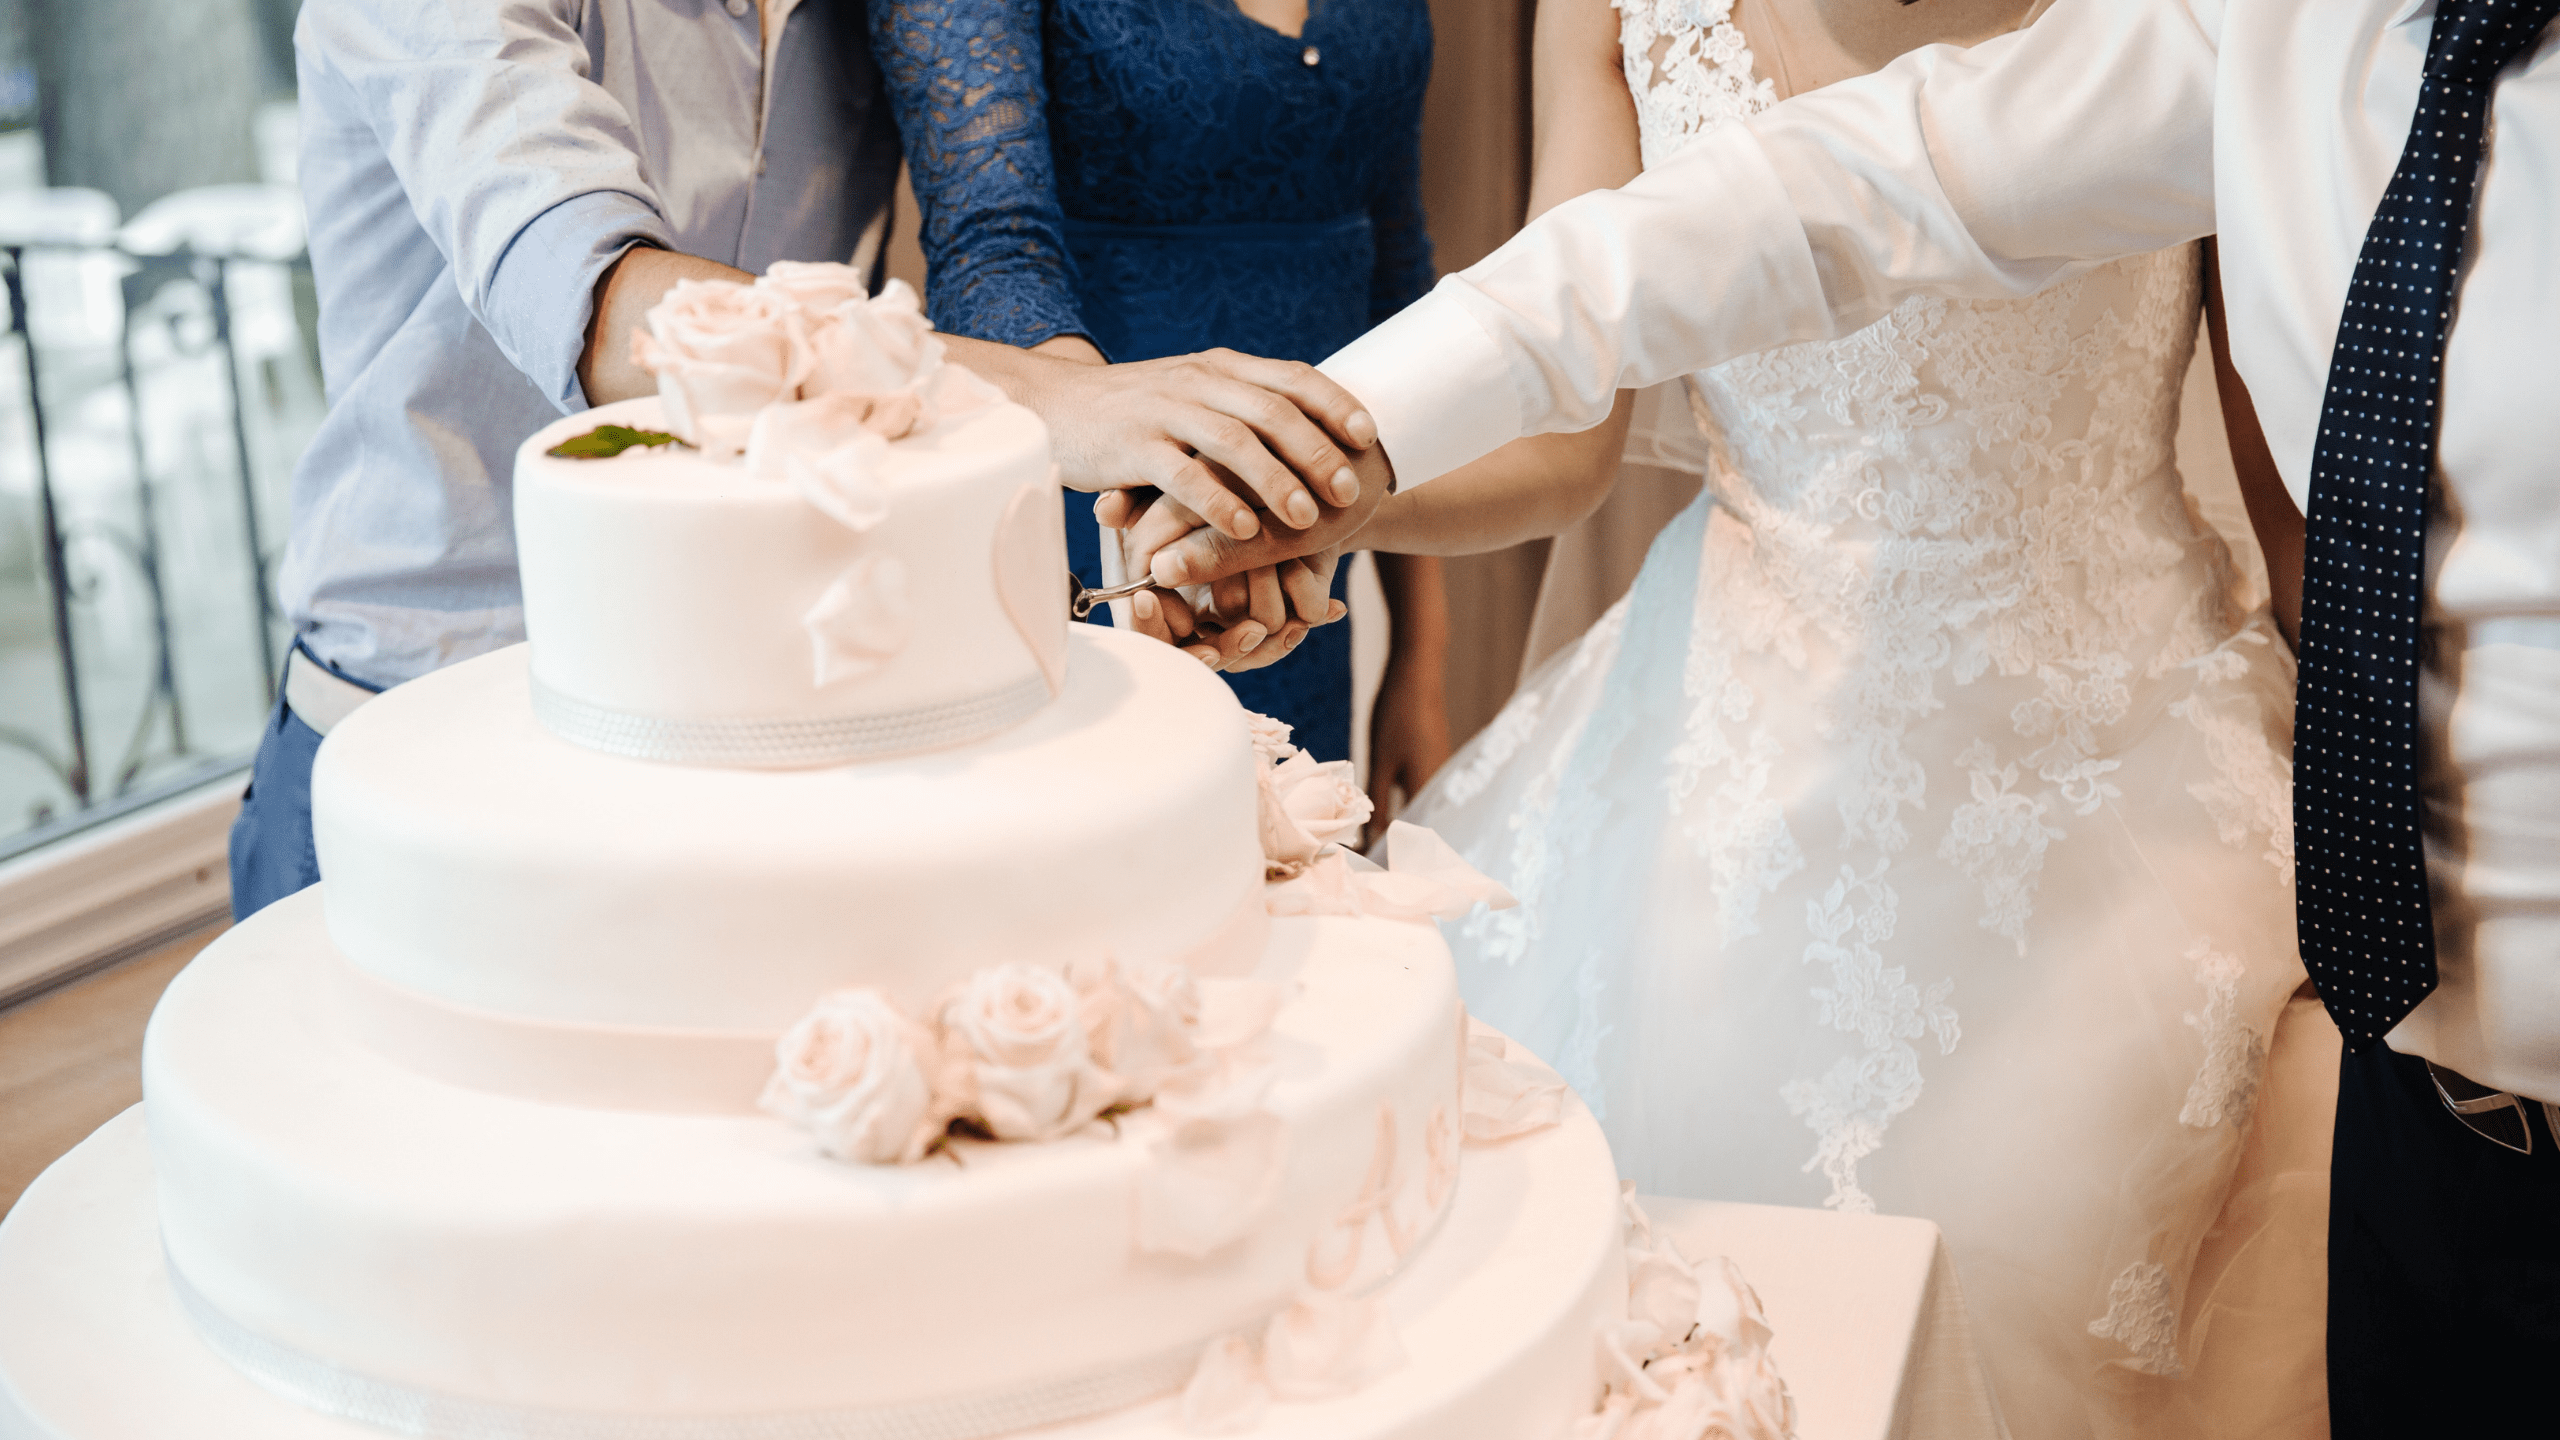 5-custom-wedding-cake-bakers-to-book-for-your-big-day